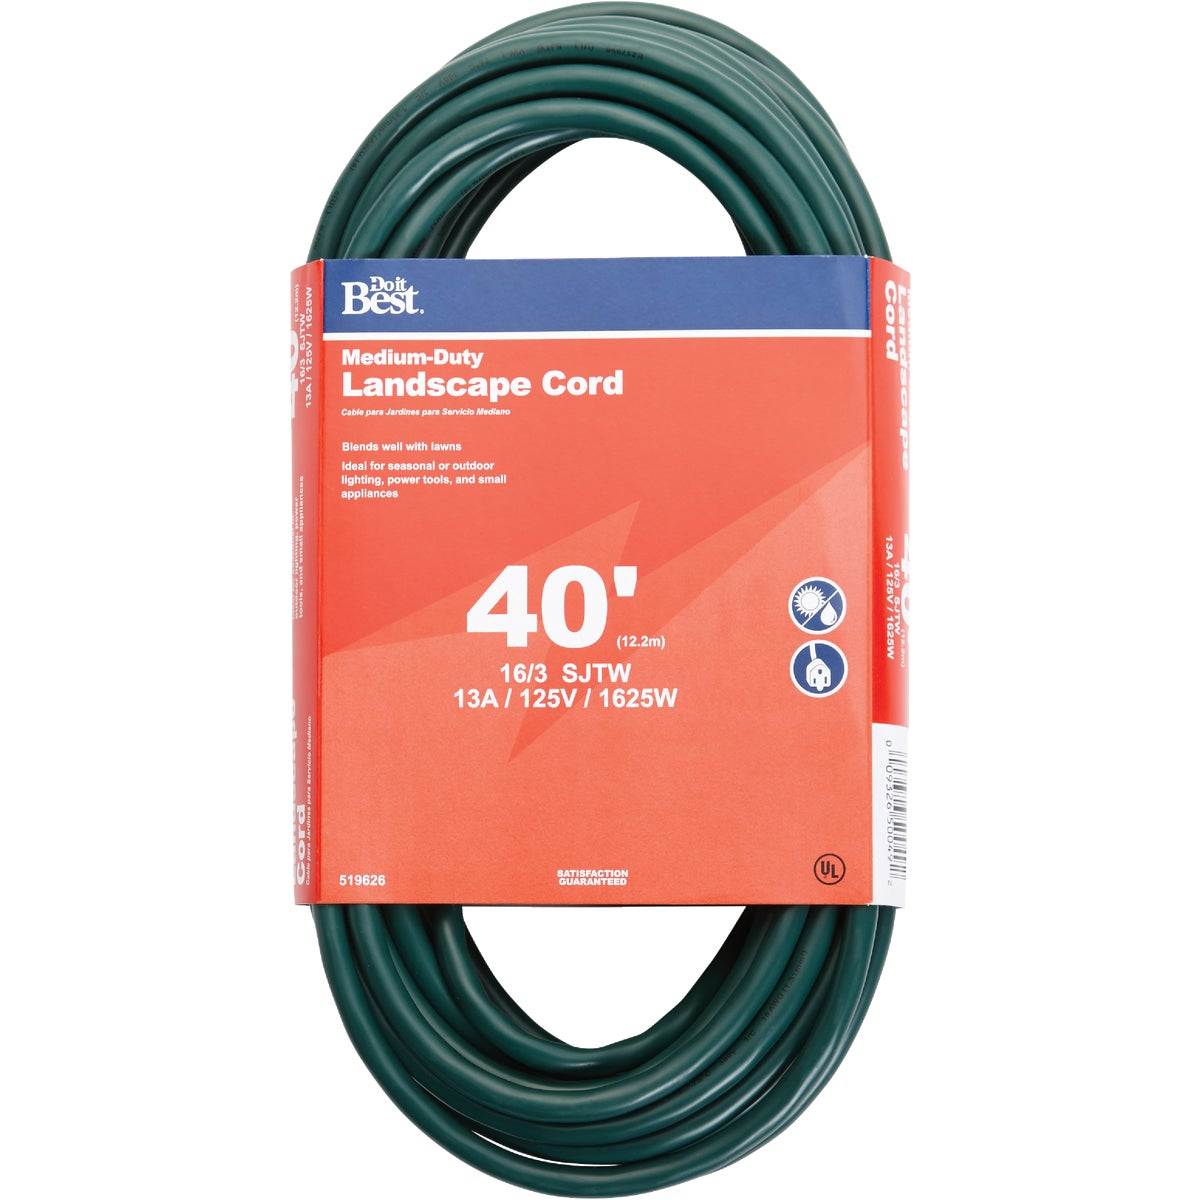 40' 16/3 GREEN EXT CORD - OU-JTW163-40X-GR by Do it Best